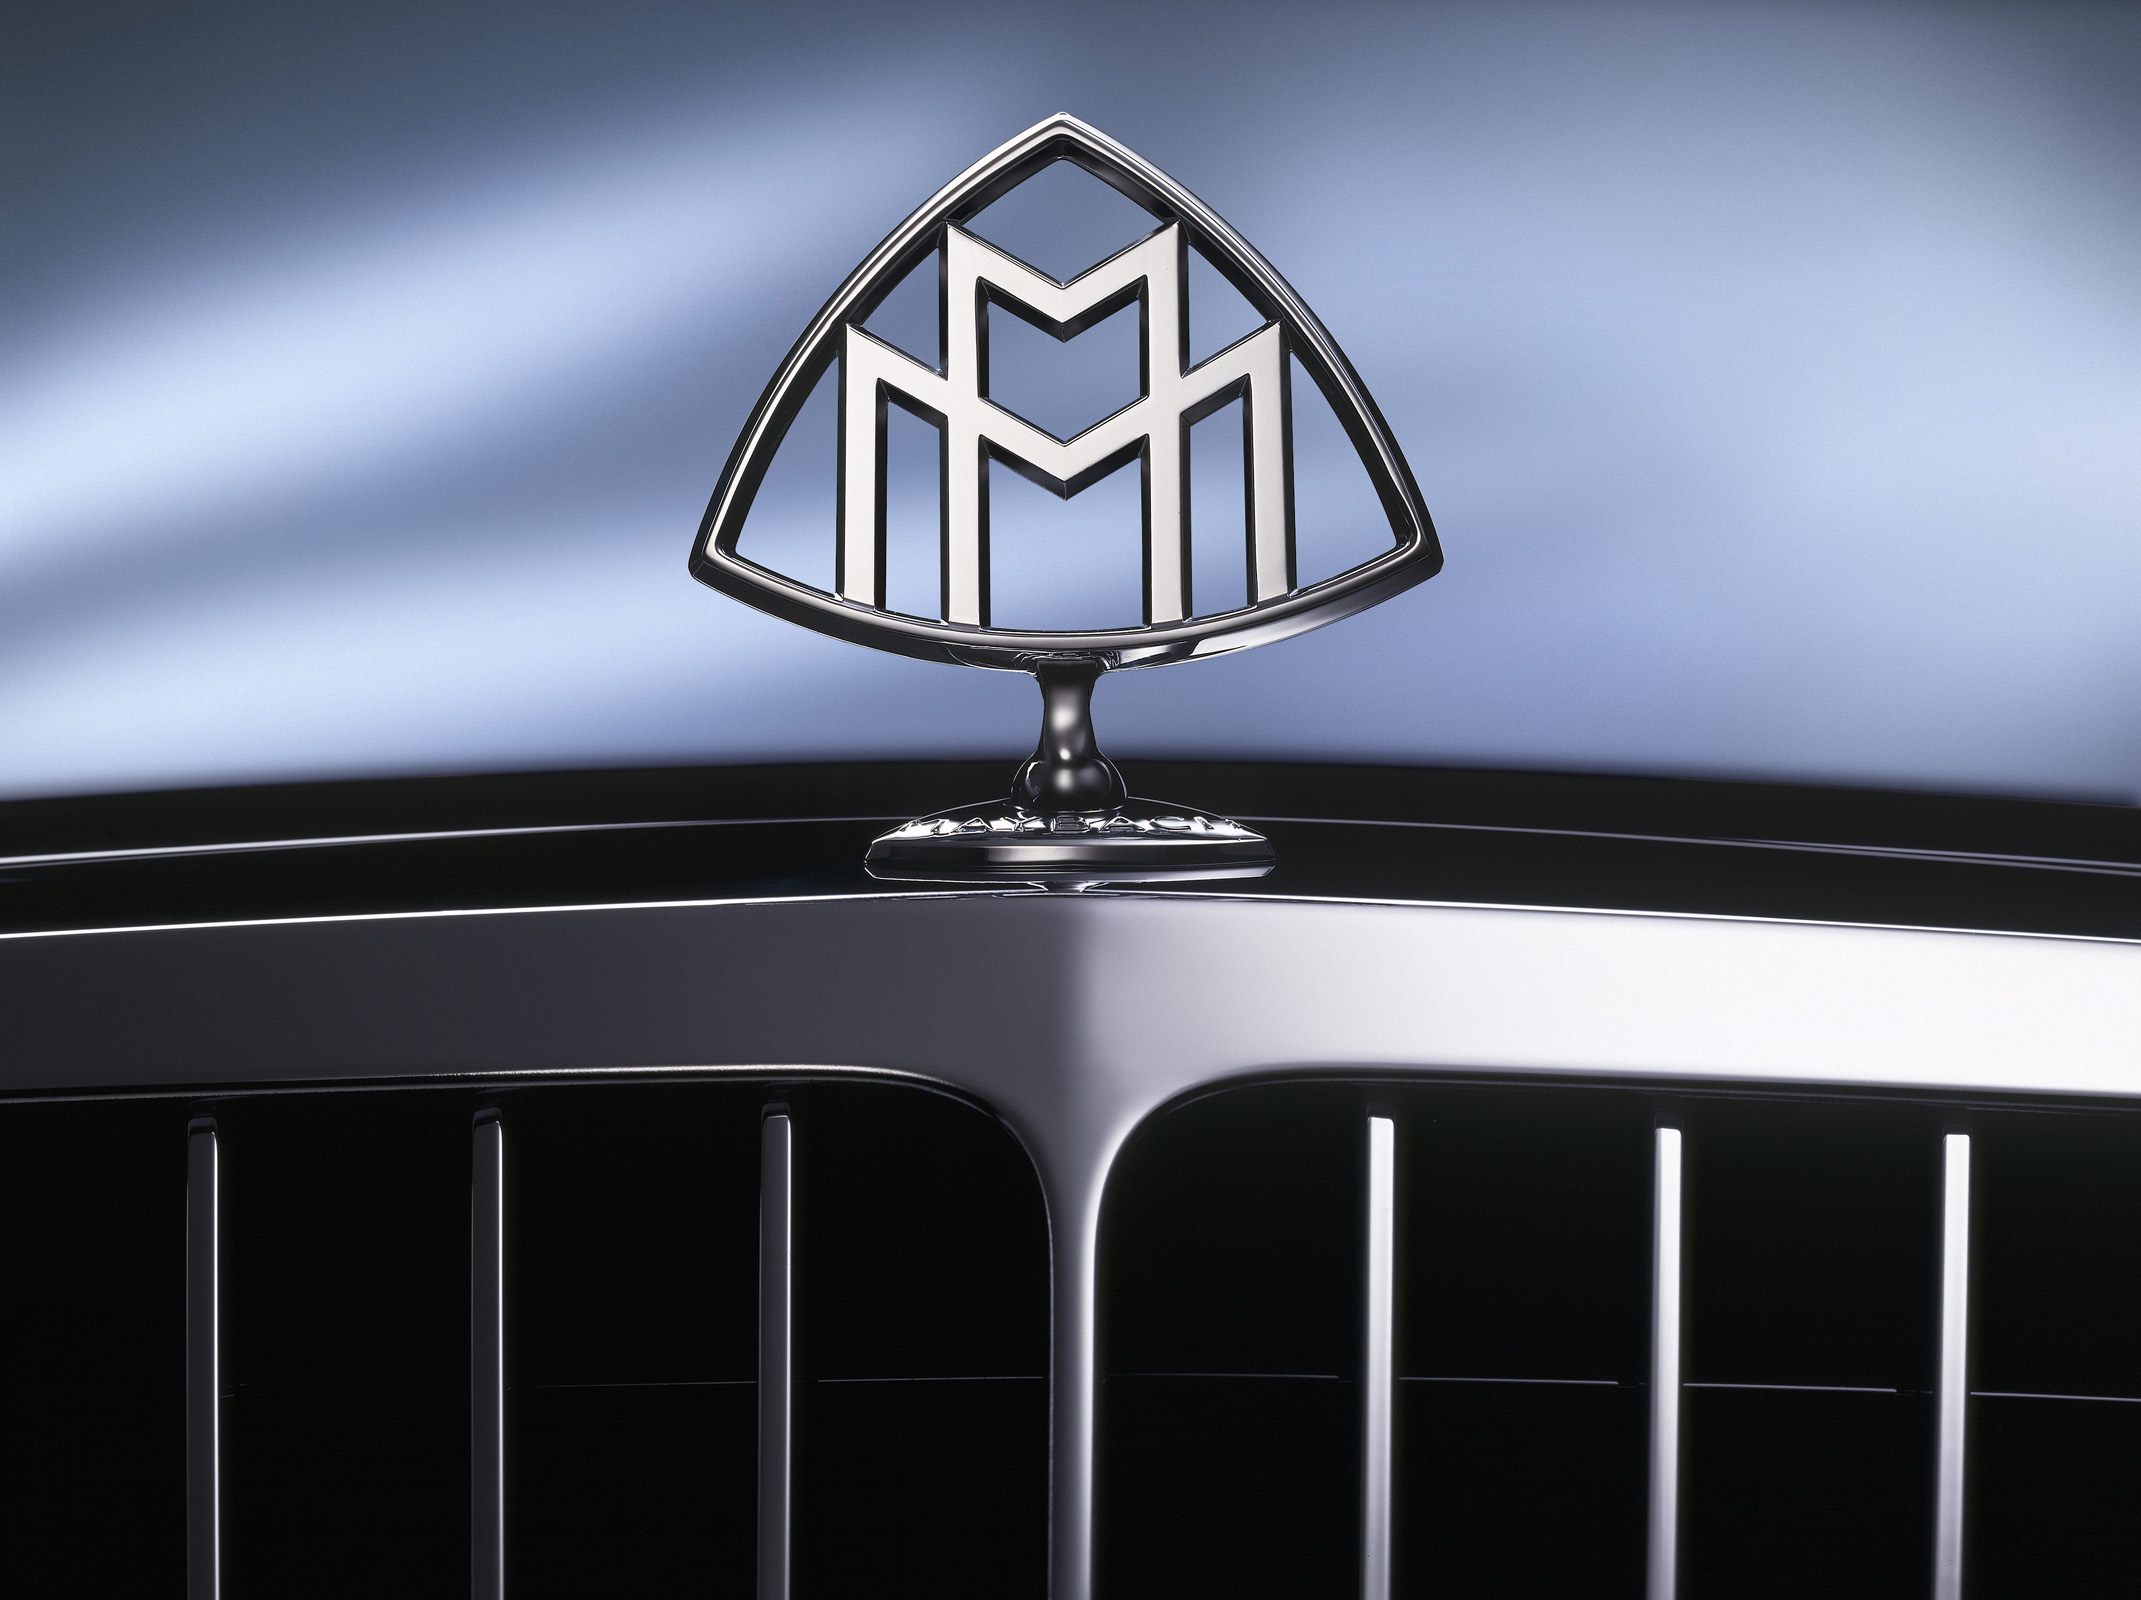 Mercedes-Maybach are set to reveal a GLS prestige SUV.